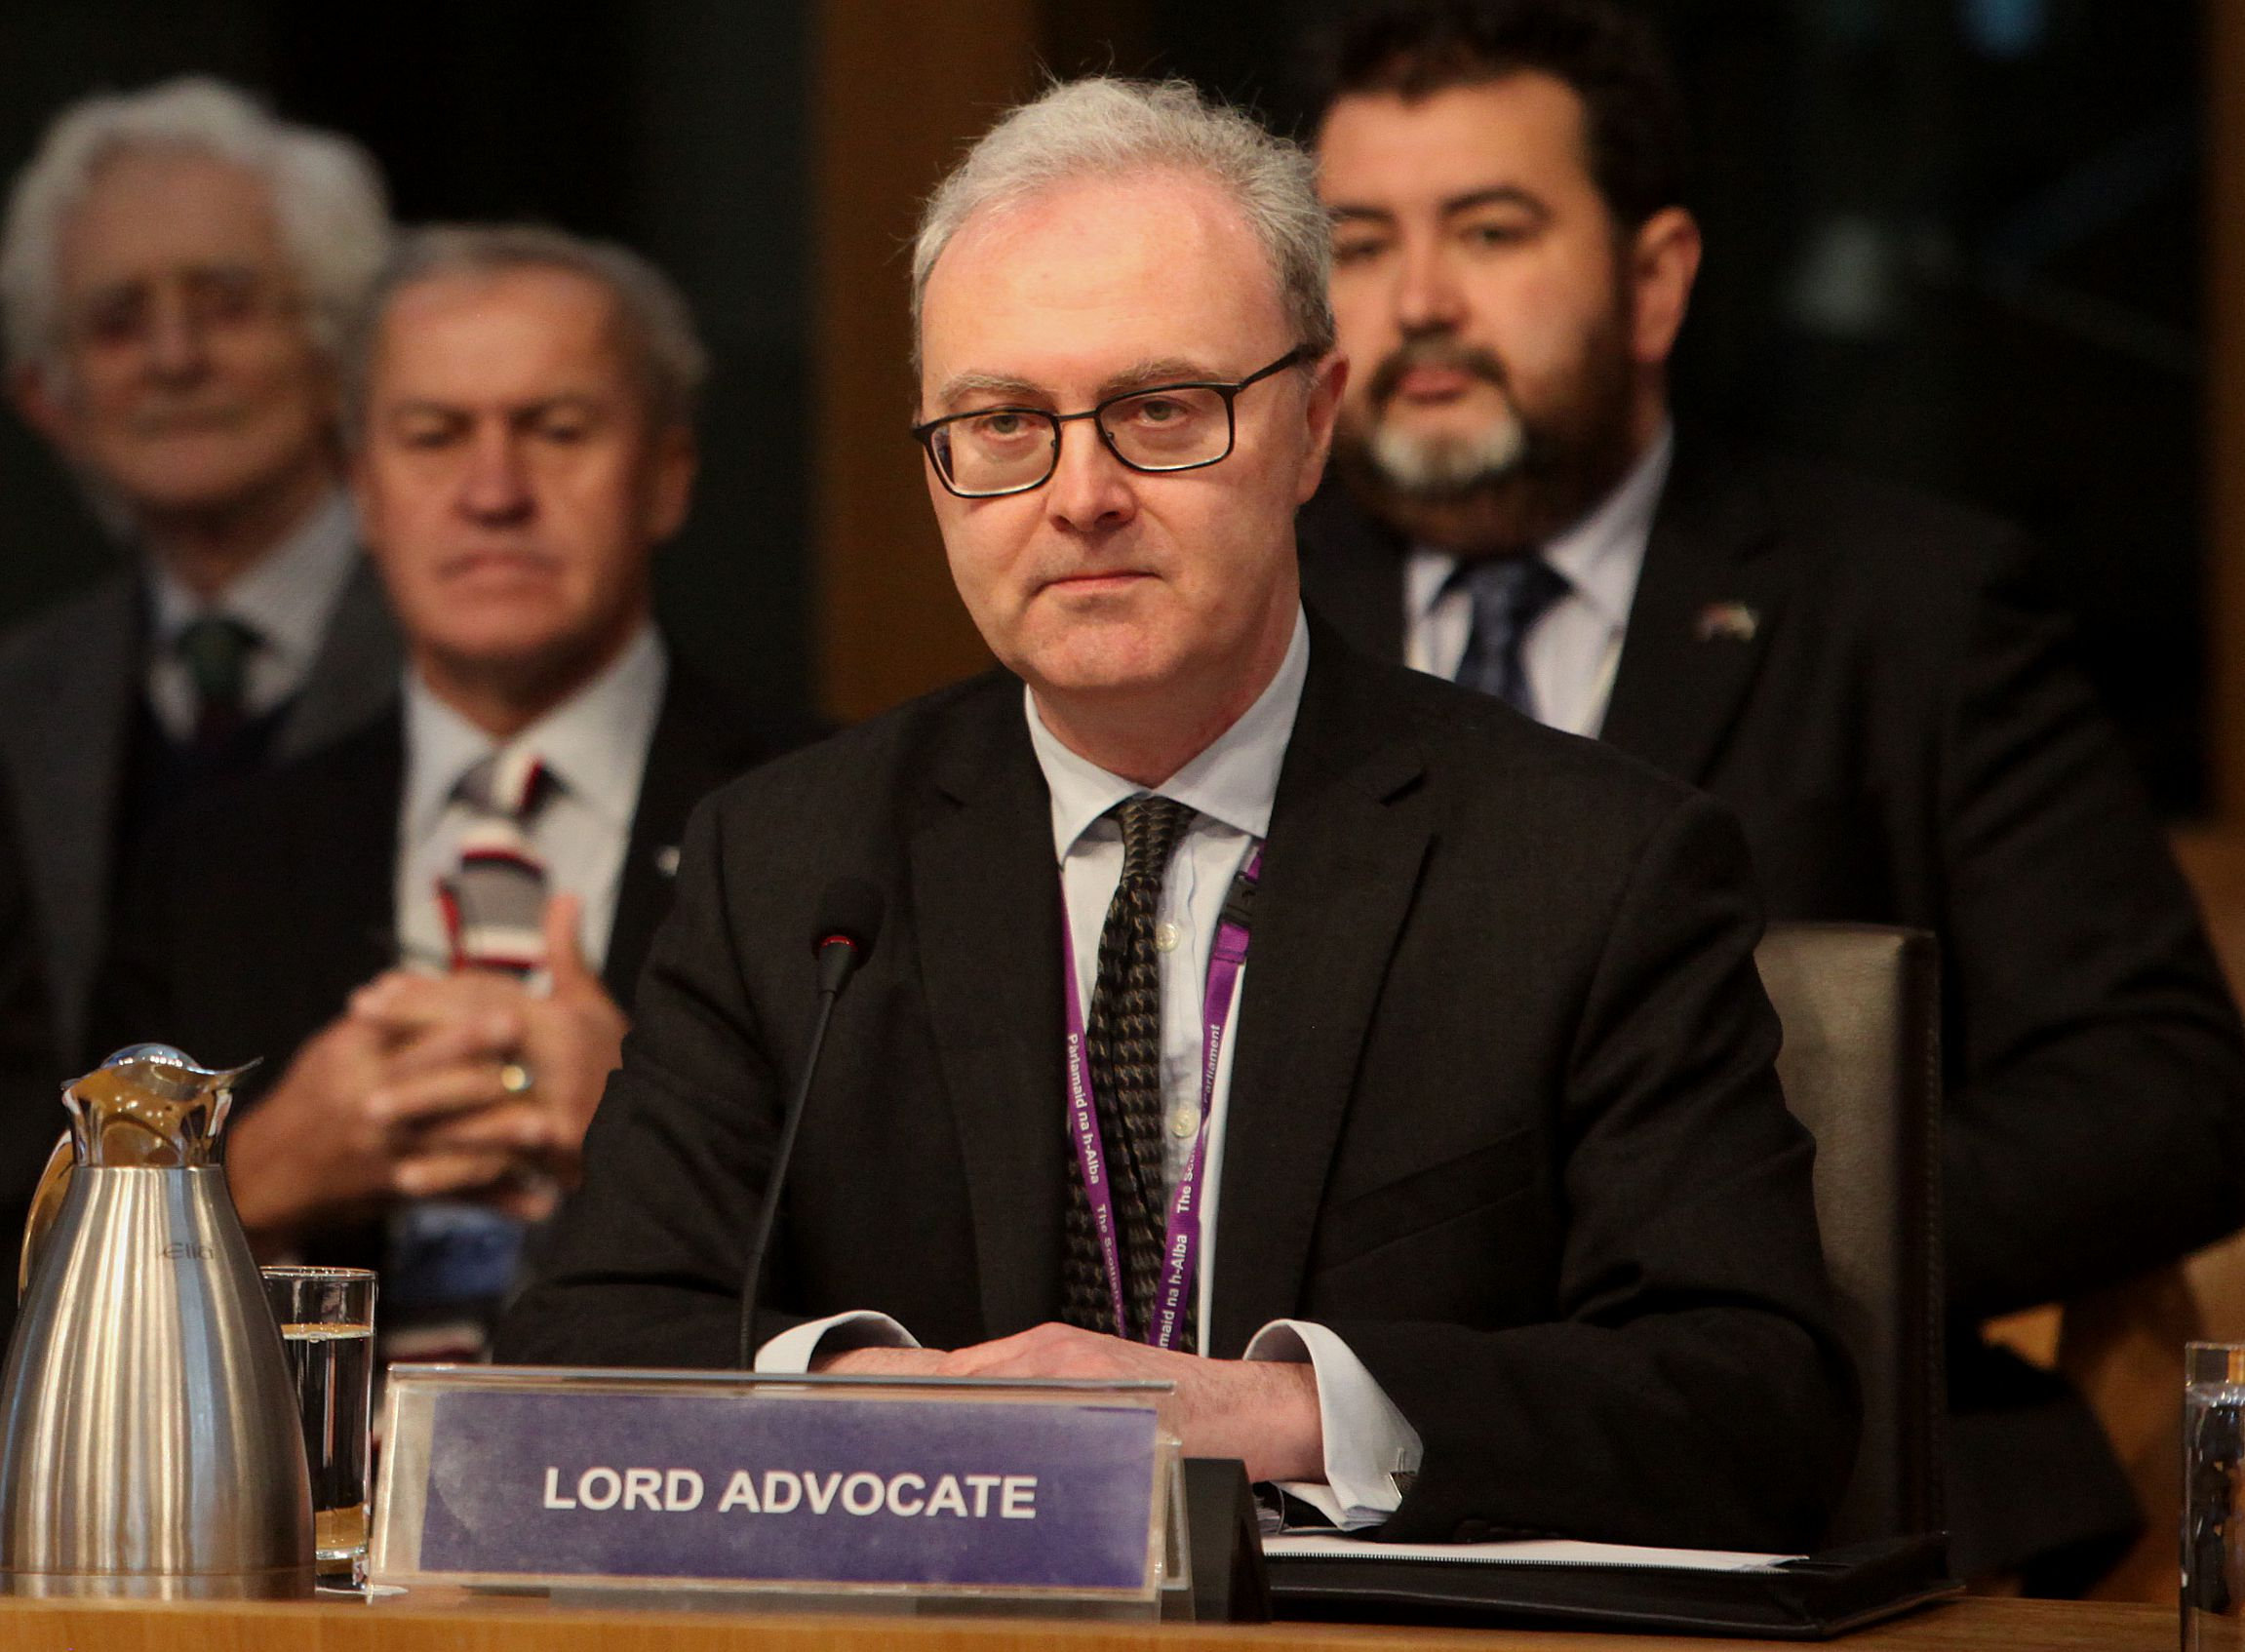 Rt Hon James Wolffe QC, Lord Advocate, gives evidence at a Scottish Parliament Justice committee  tuesday..Pic Gordon Terris/The Herald.17/1/17.